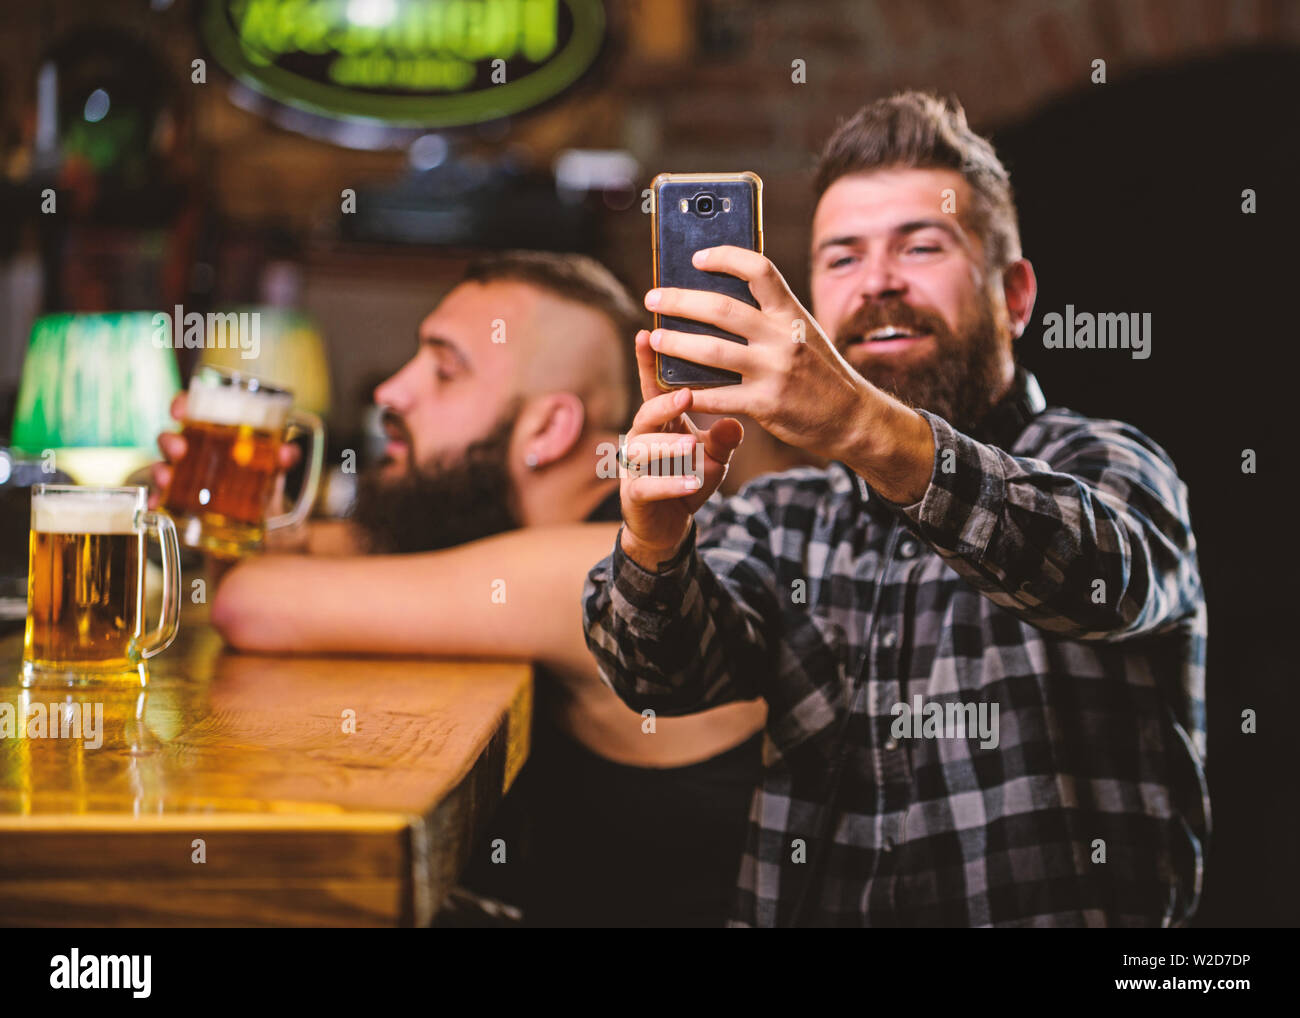 Online communication. Send selfie to friends social networks. Man in bar drinking beer. Take selfie photo to remember great evening in pub. Man bearded hipster hold smartphone. Taking selfie concept. - Stock Image